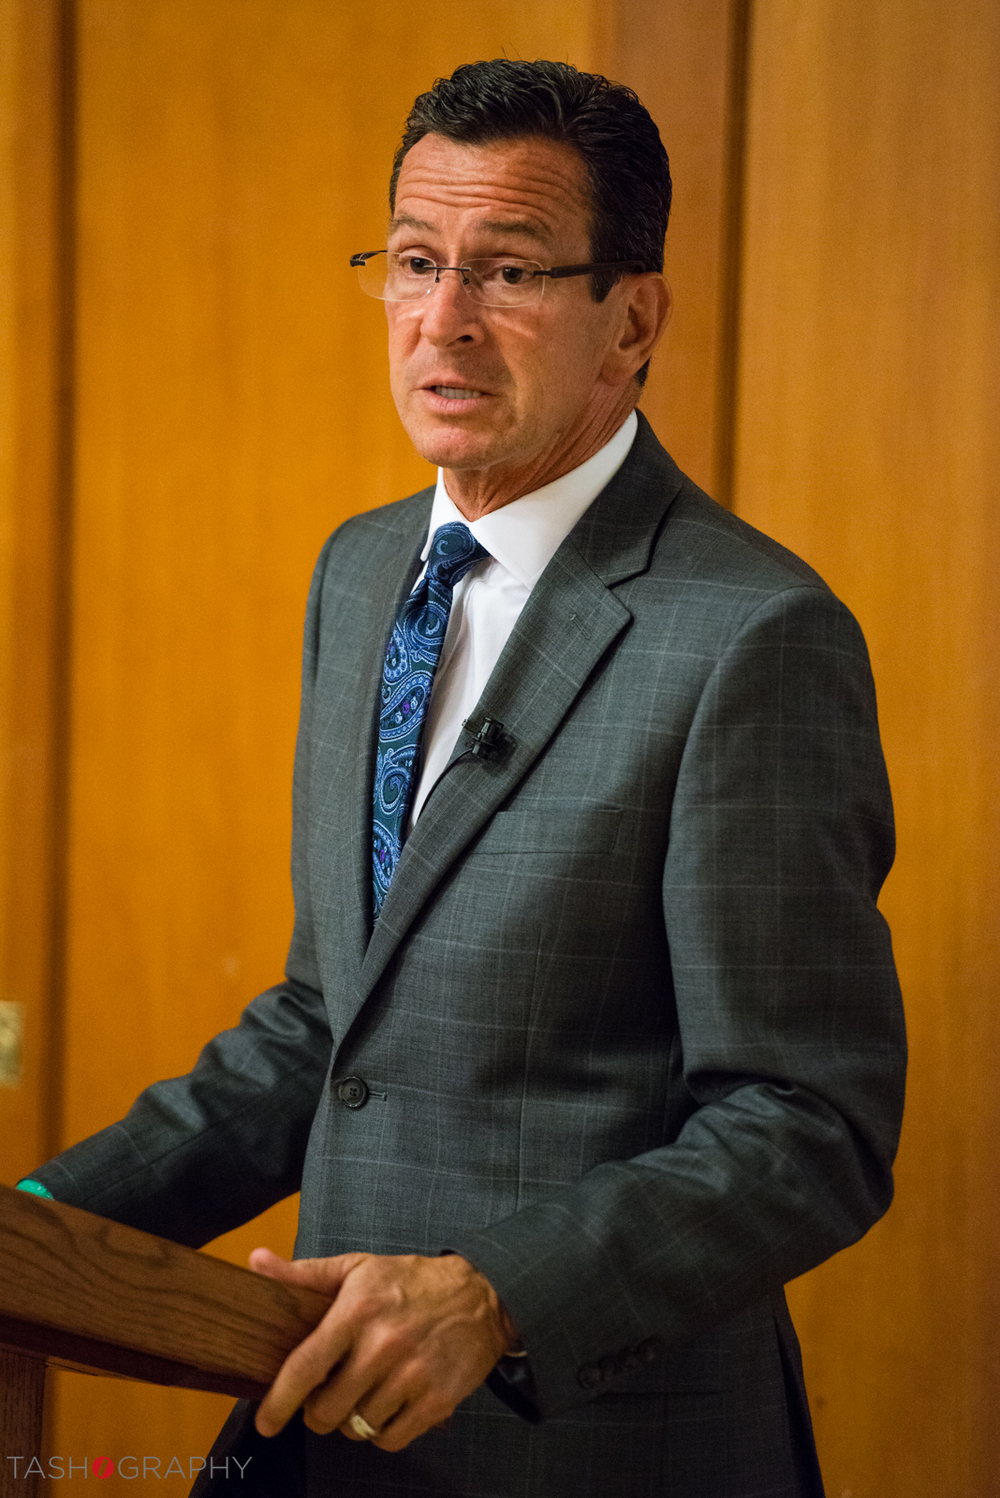 Governor Dannel P. Malloy